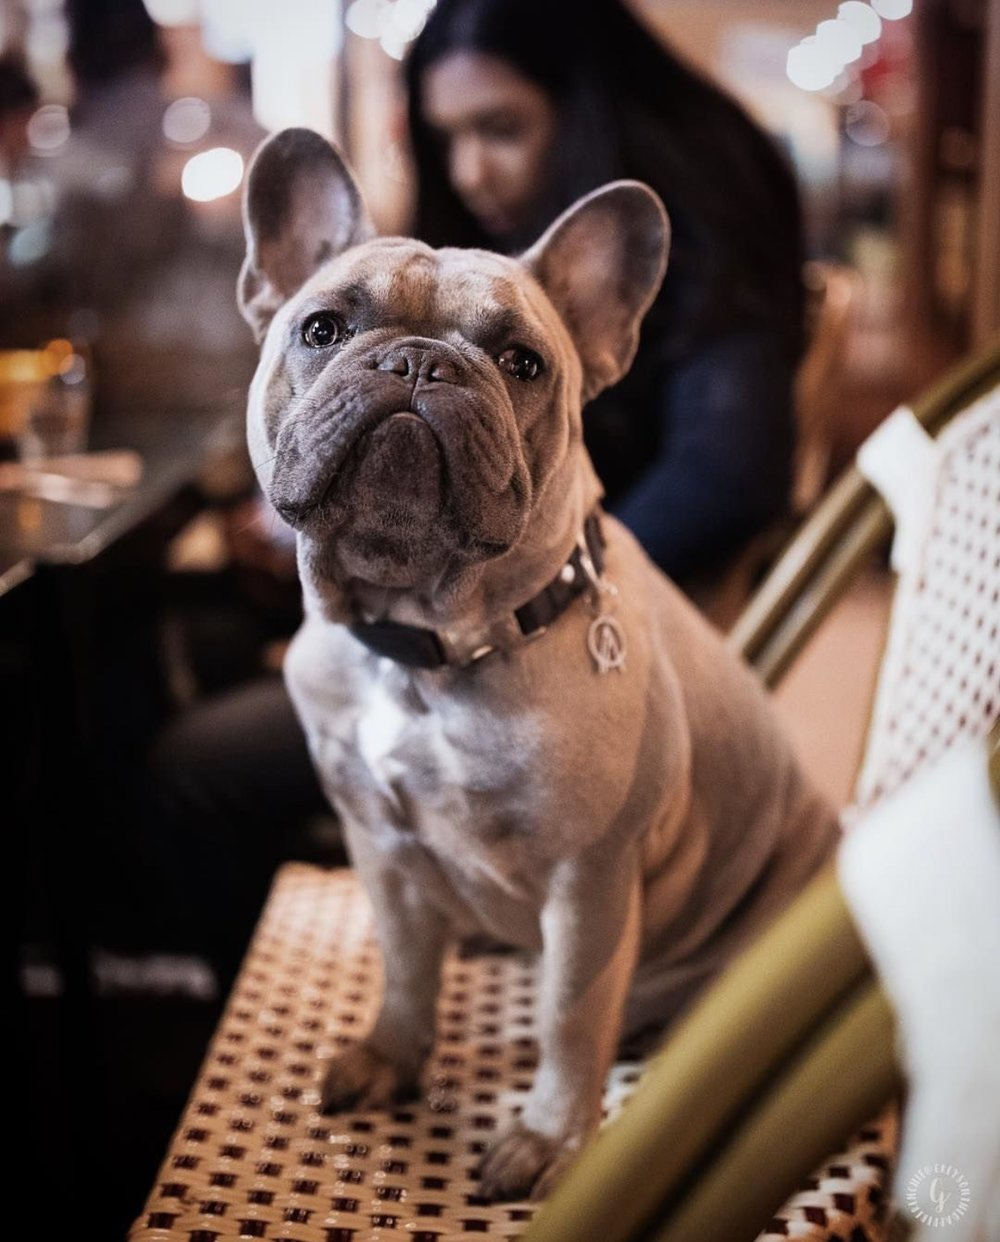 @greysonthedapperfrenchie